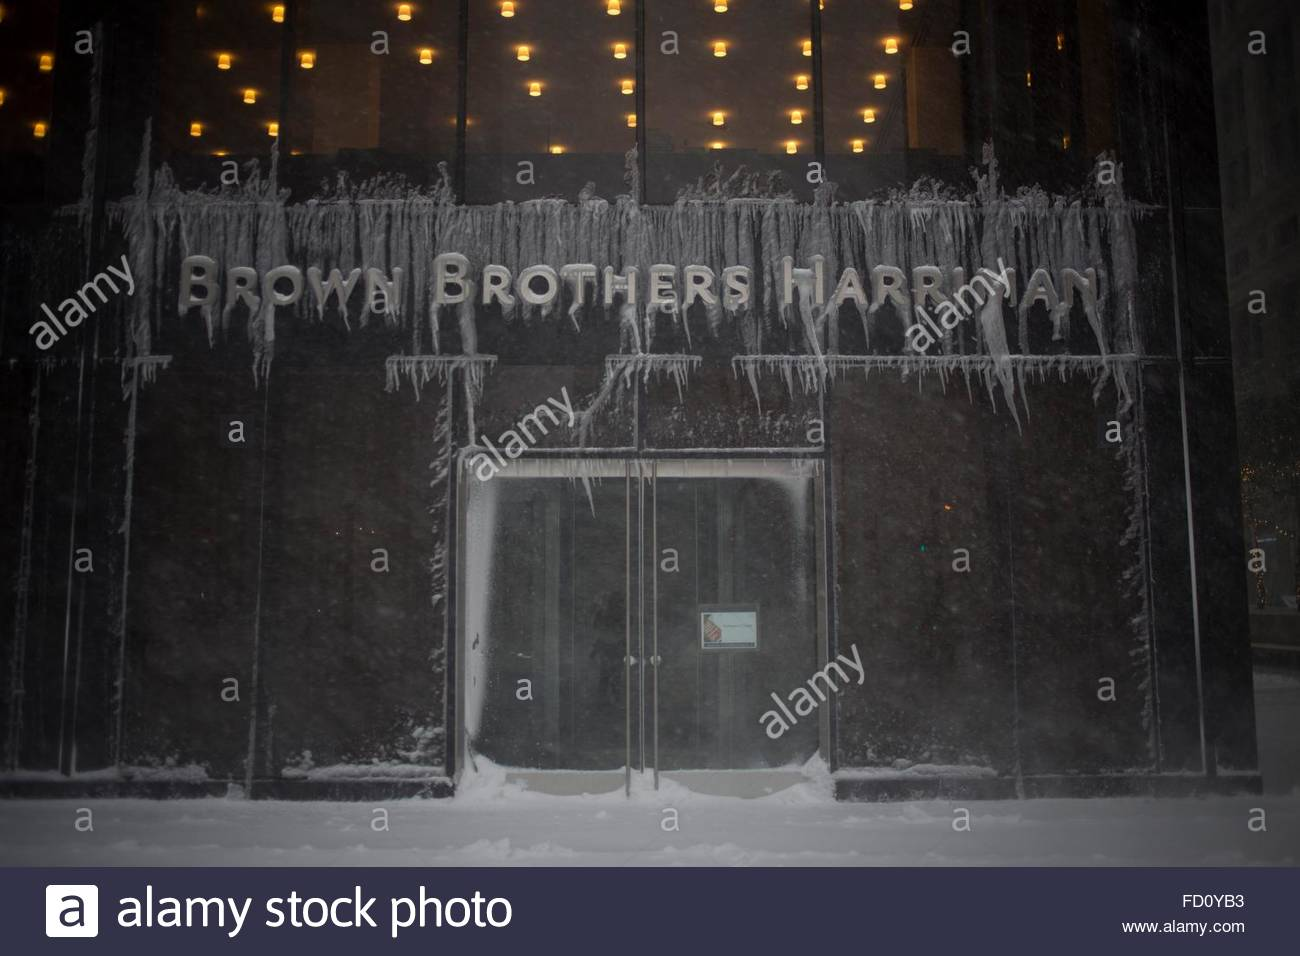 Worksheet 61 Centimeters epa05121649 an office building is seen covered in snow lower the us east coast could receive more than 61 centimeters of snowfall